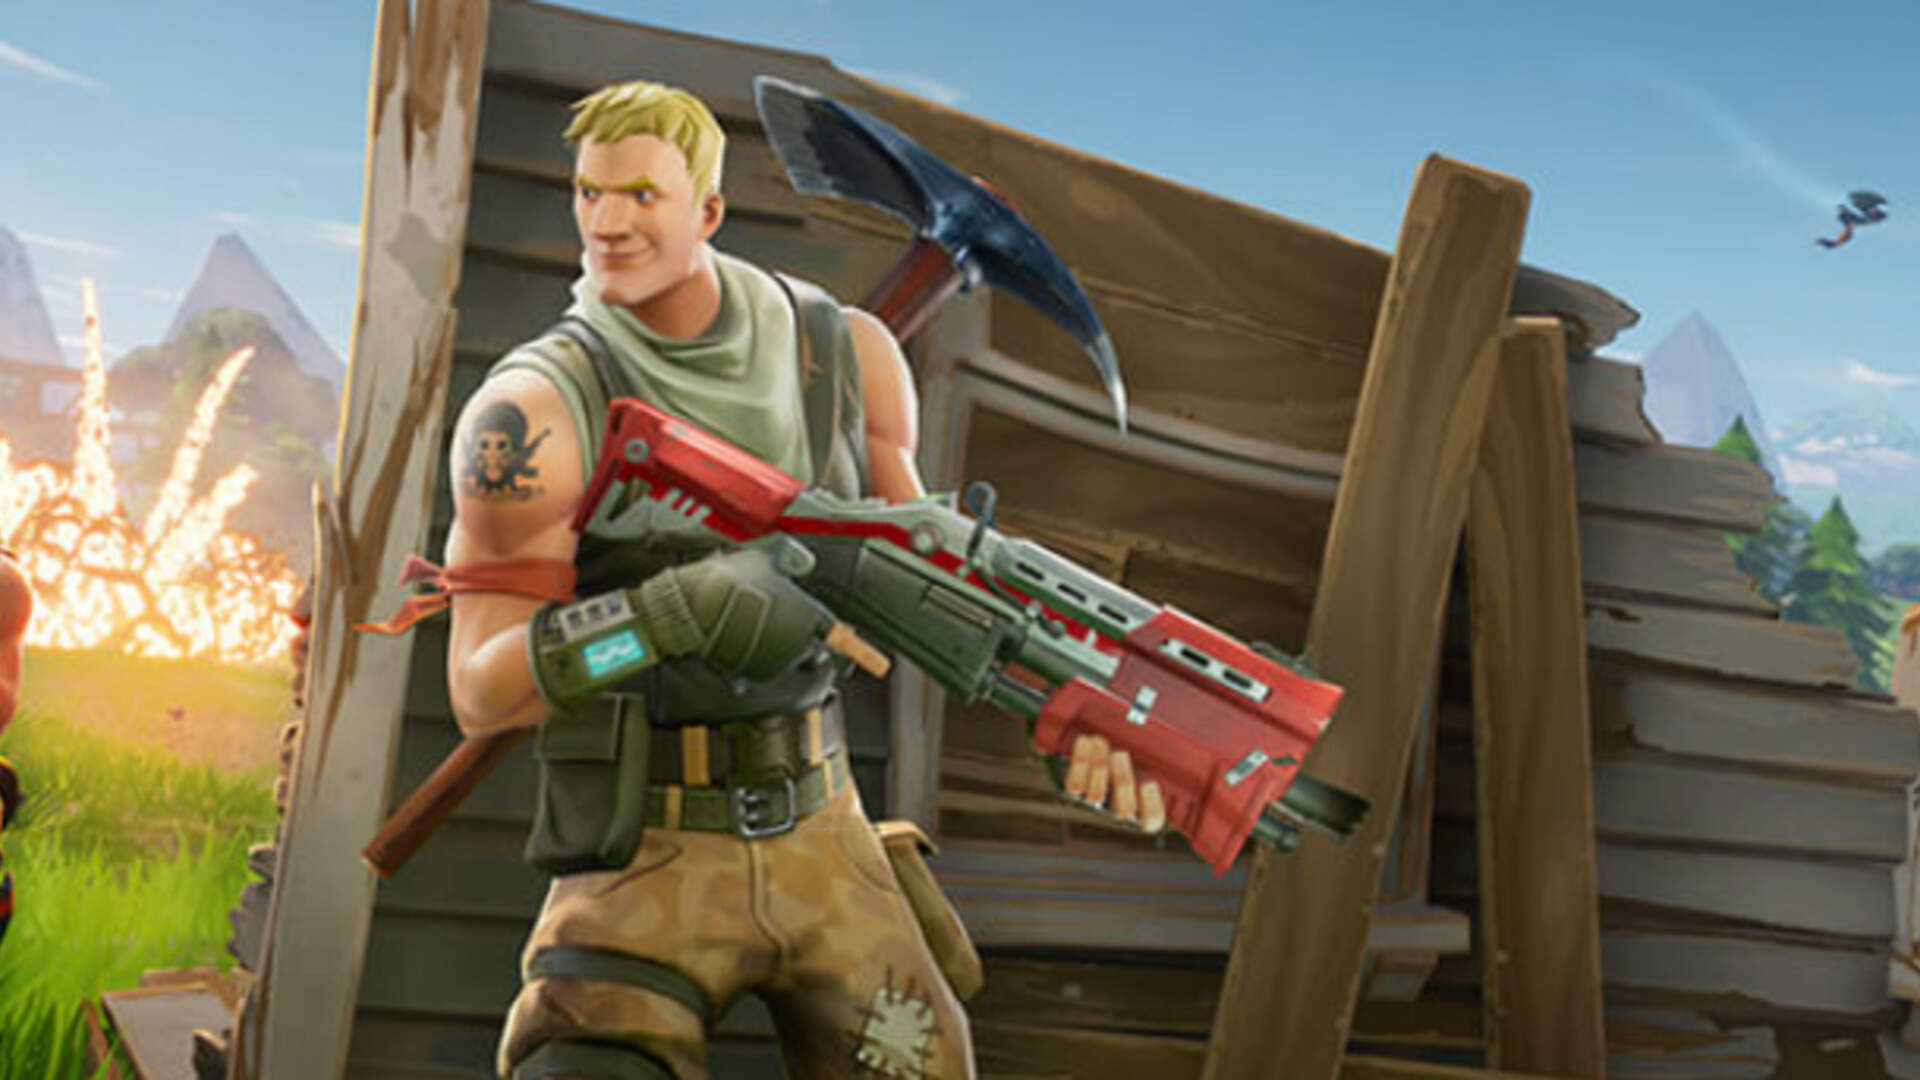 Fortnite Battle Royale is Coming to Mobile With PS4 Cross Play [Update: Live on iOS]